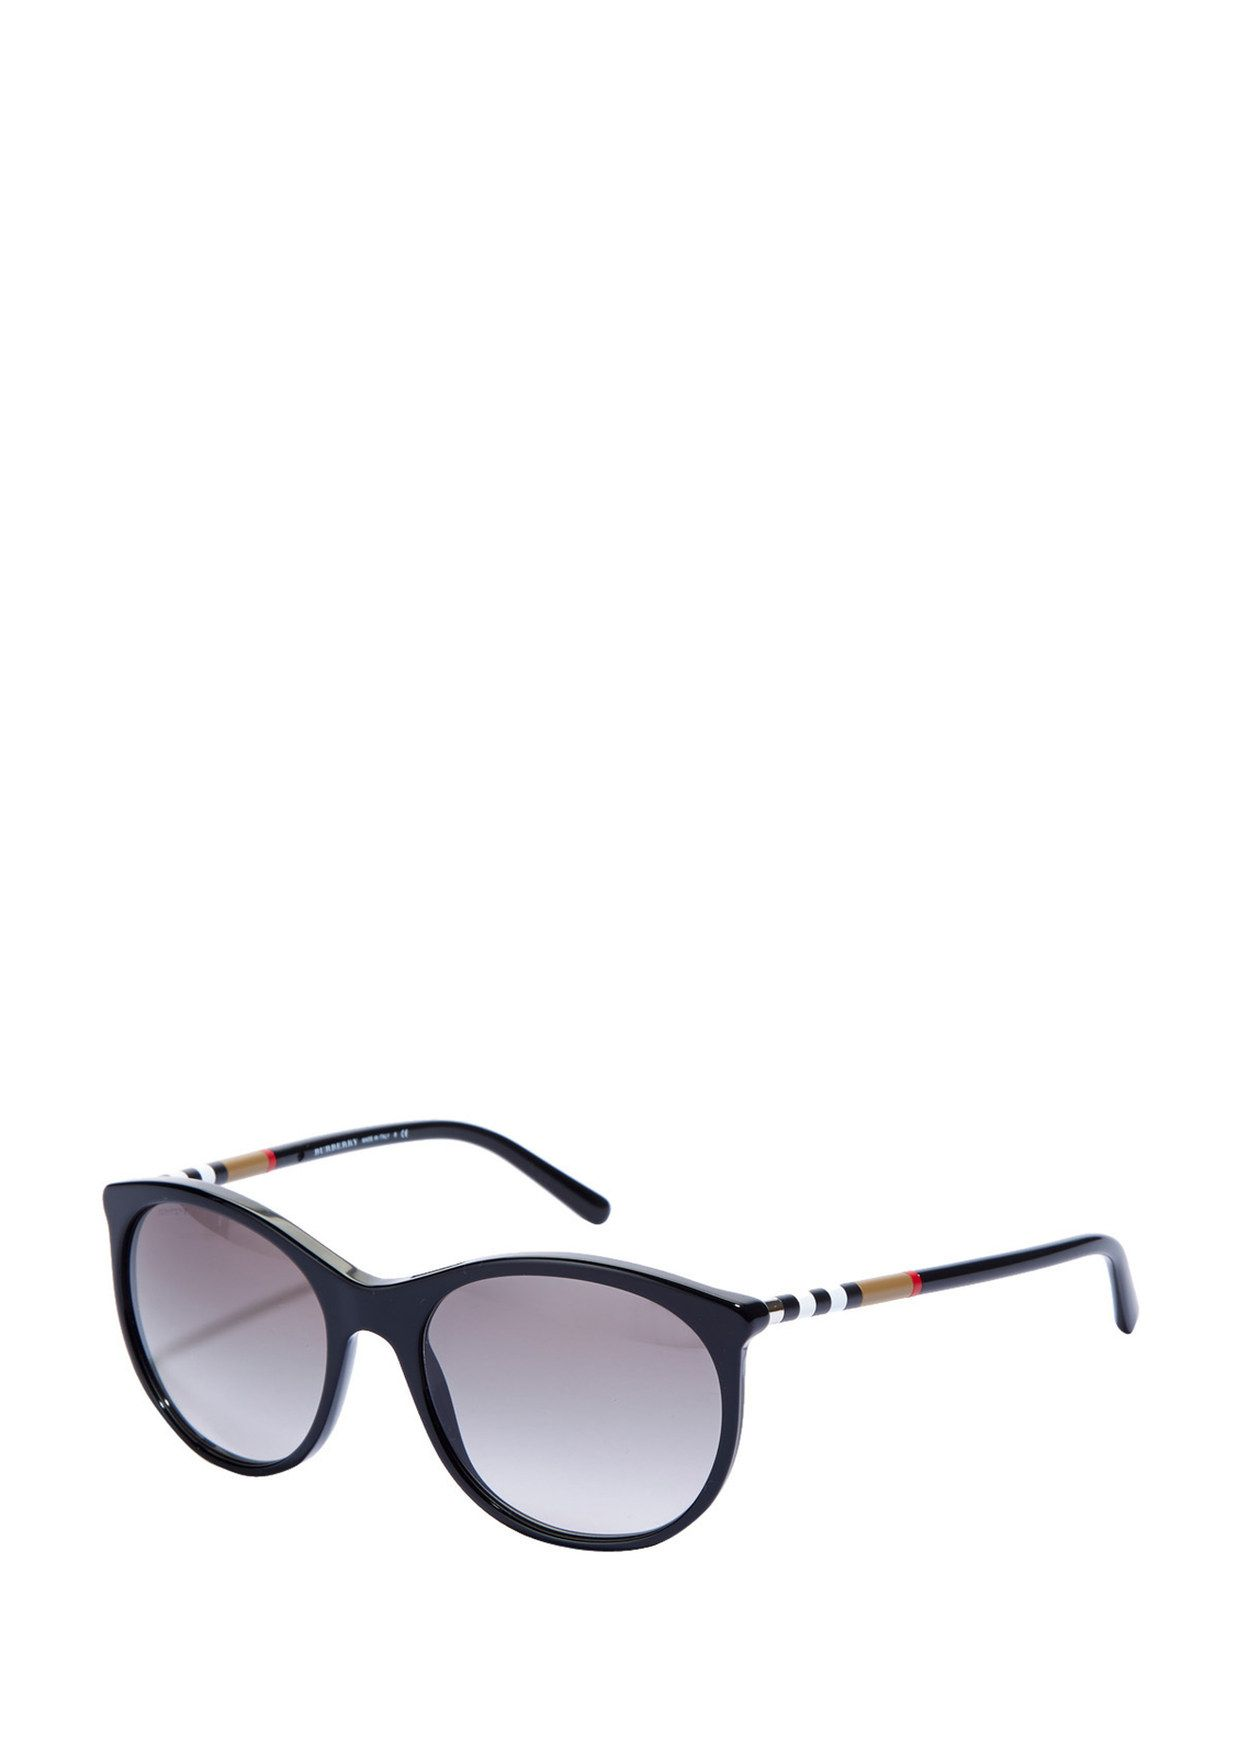 Burberry Sunglasses - Women s   Ladies sunglasses - 55mm Modified Cat Eye -  Sale  179.99 marked down from  224. dace218e60